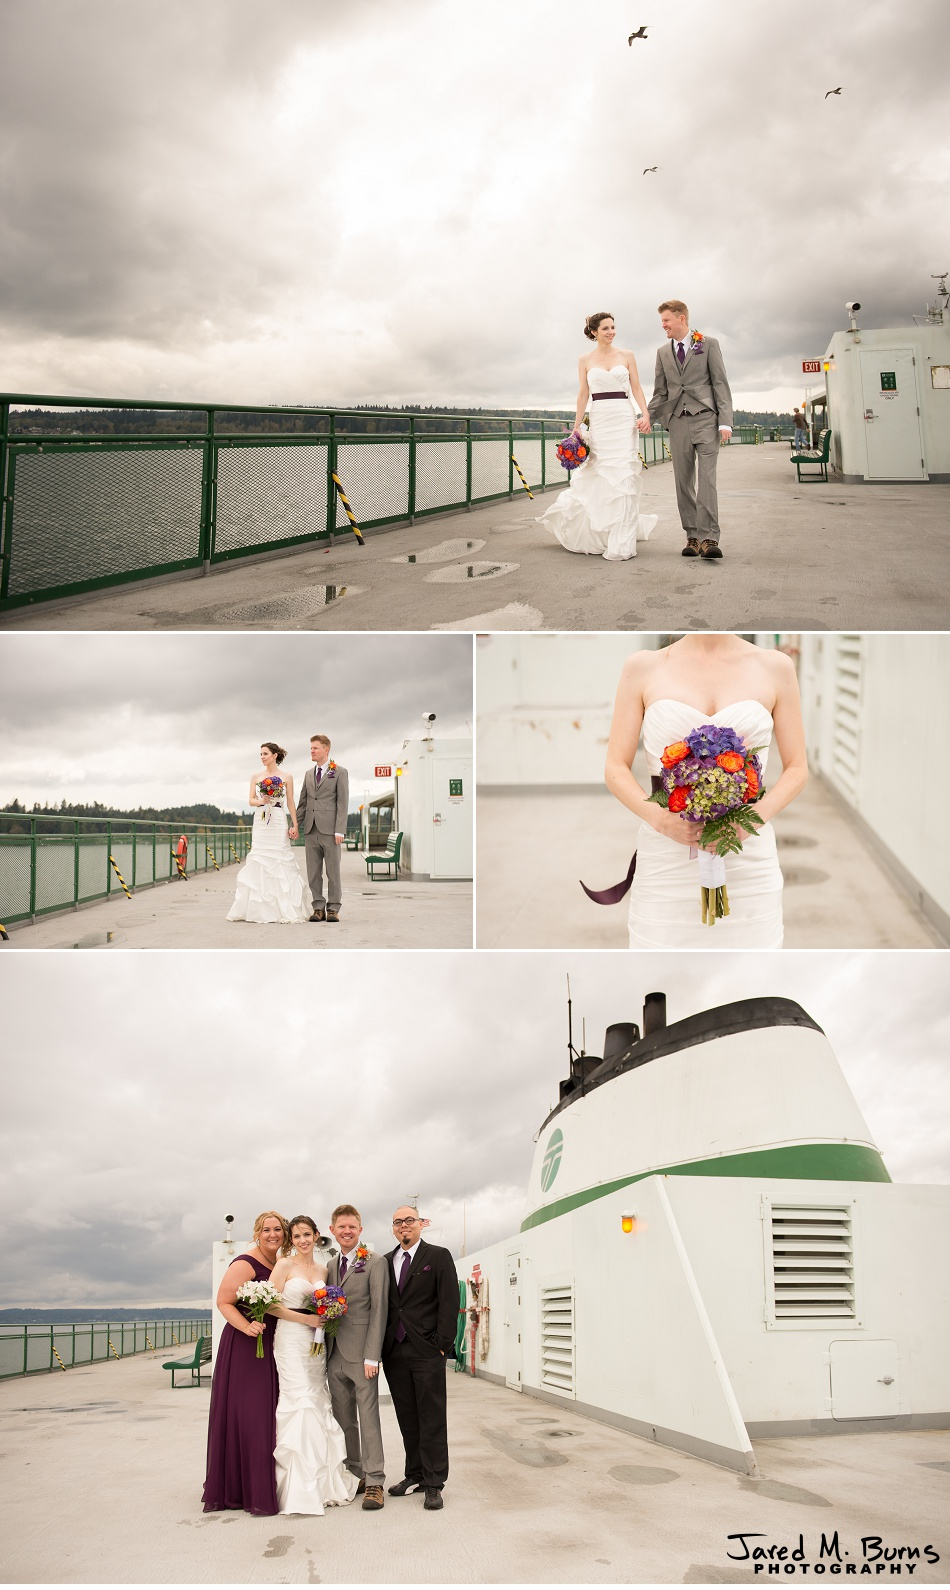 Kyle & Stephanie - Echo Falls and Washington Ferry Wedding Photographer - Jared M. Burns Photography 6